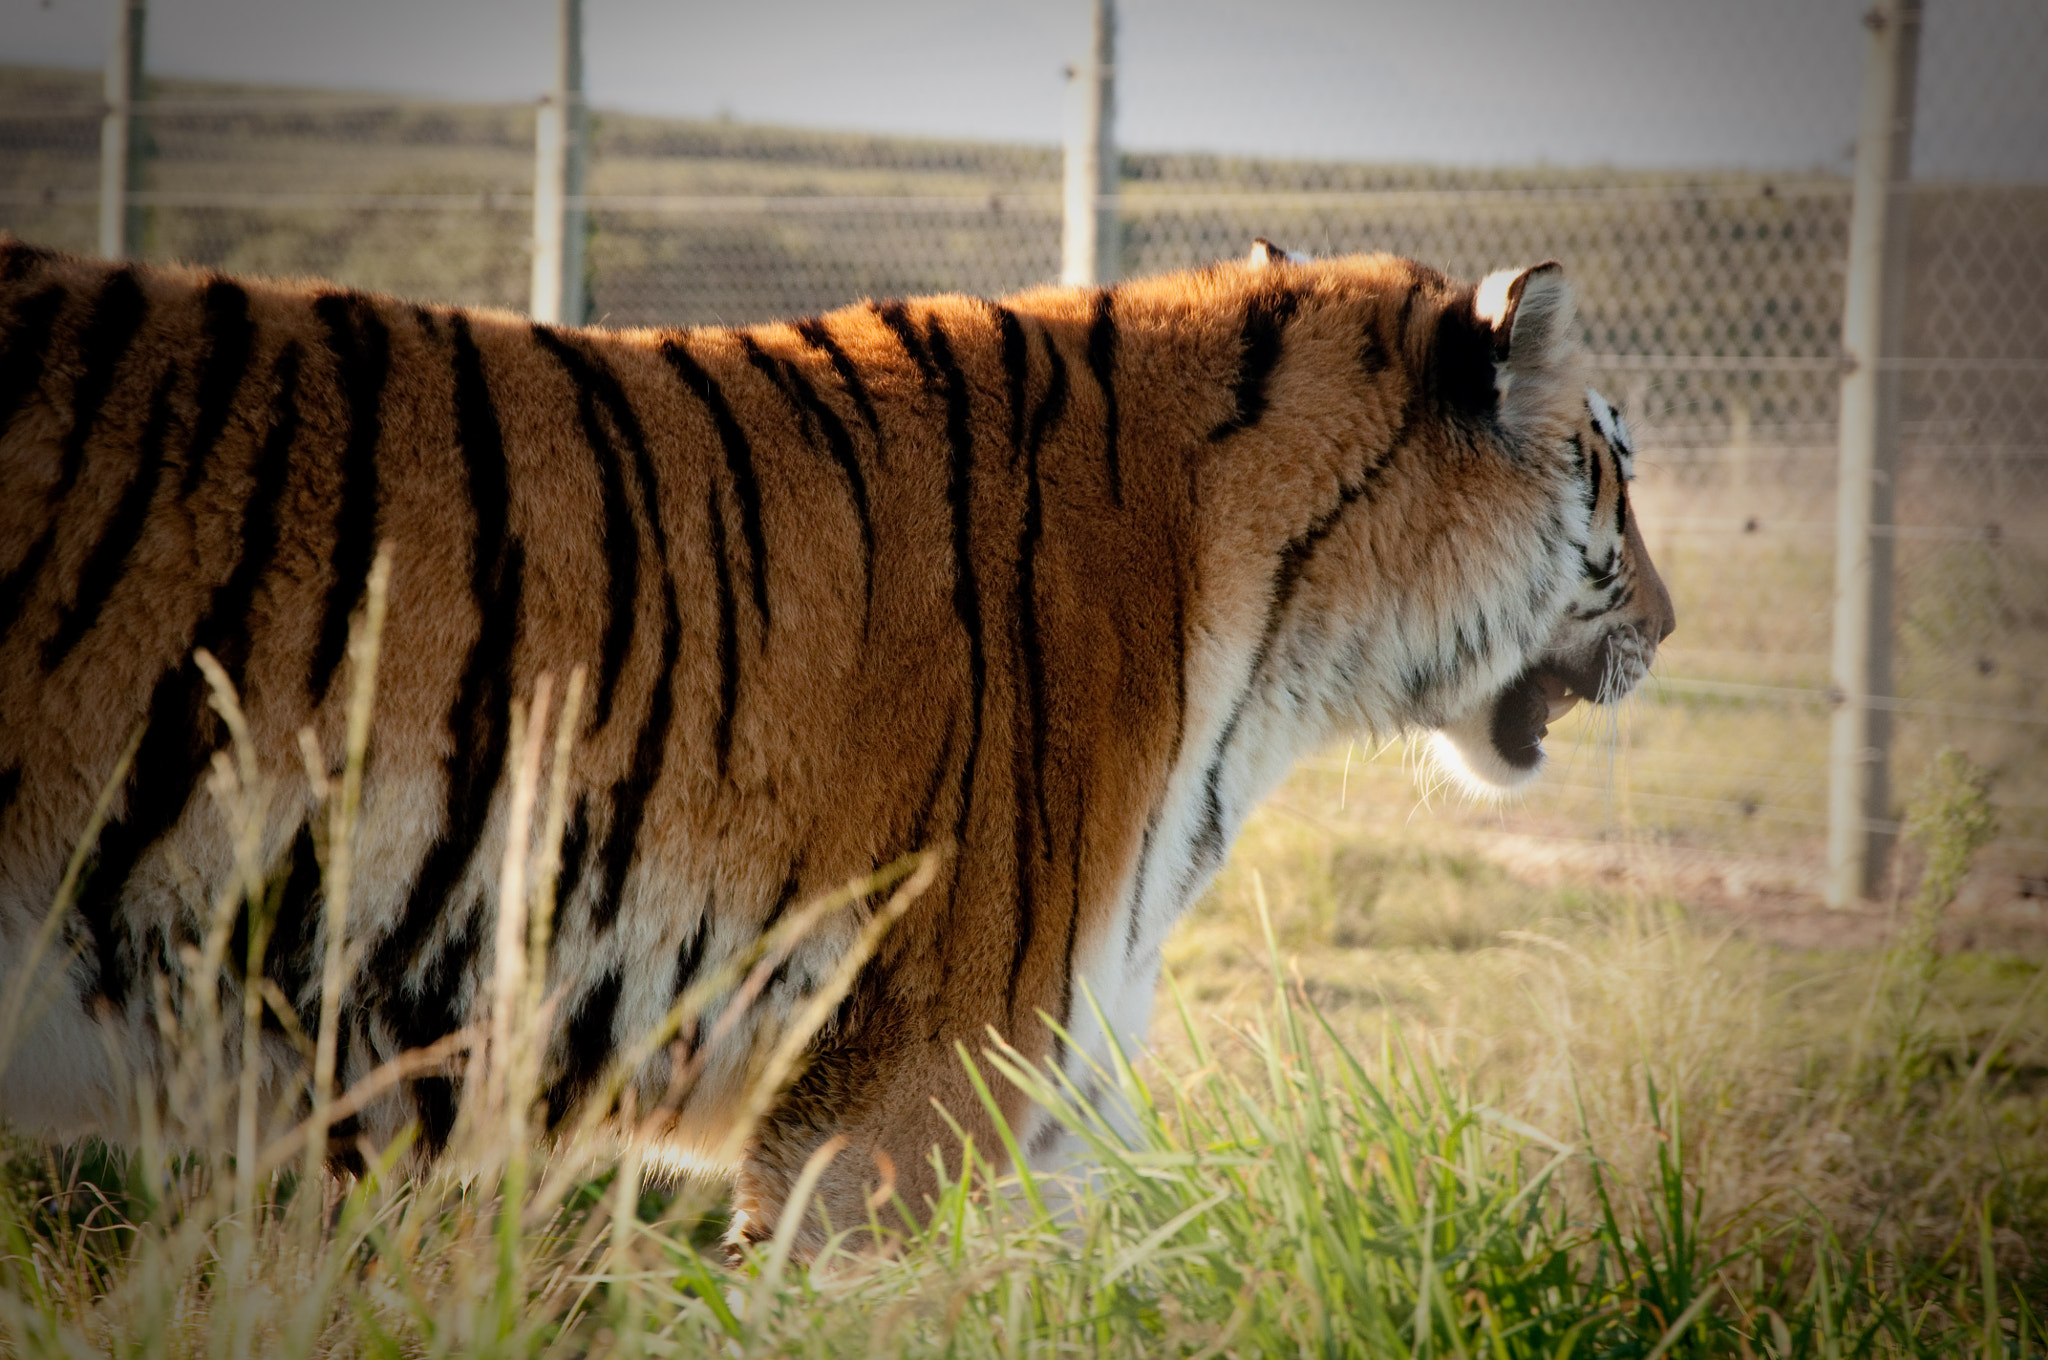 Photograph Le tigre by Danielle Theunissen on 500px